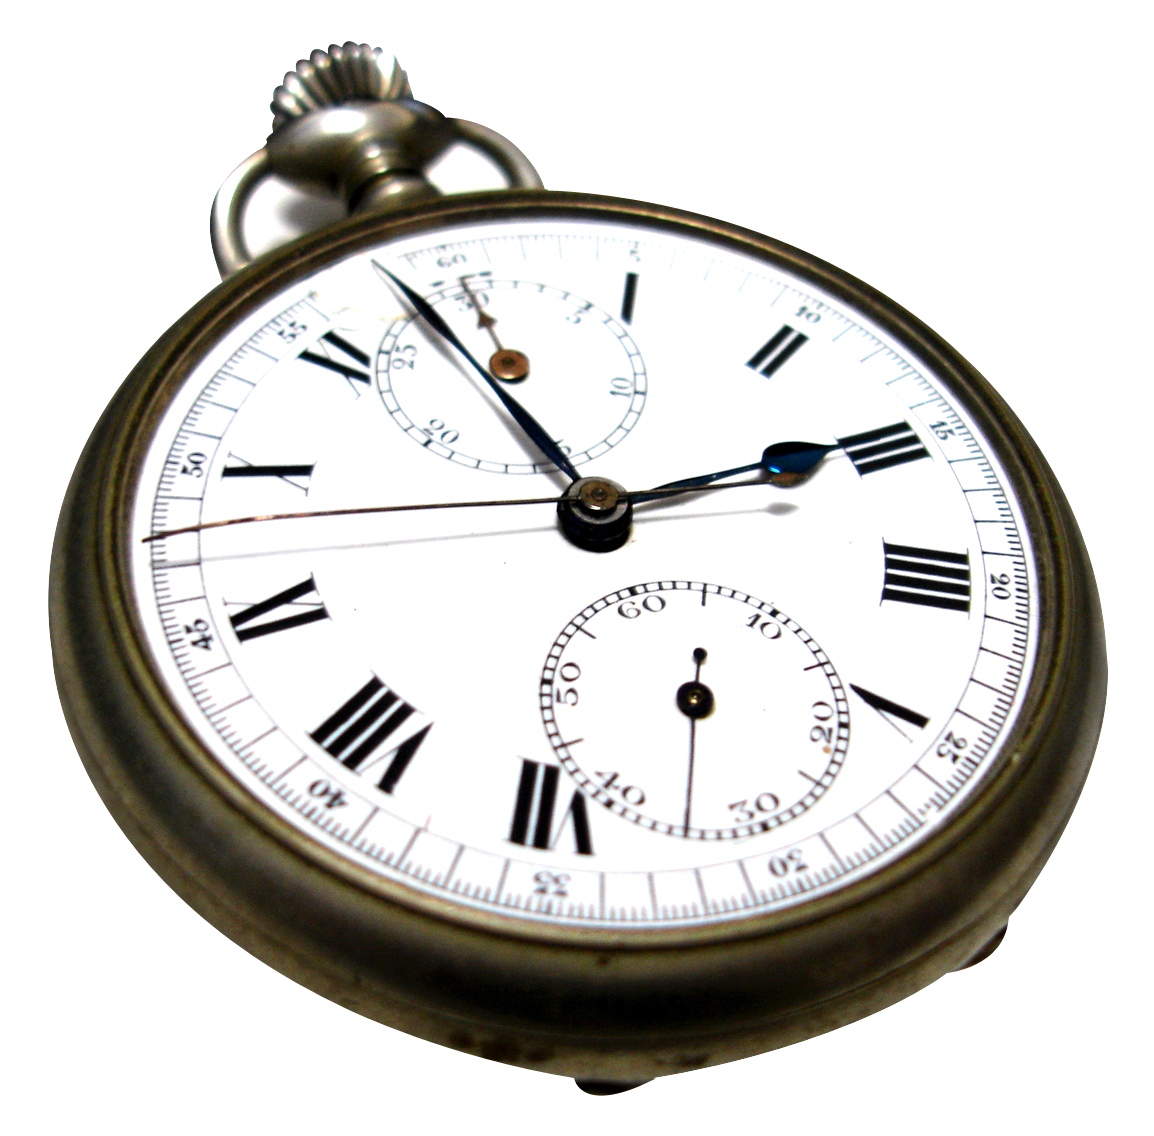 Pocket Watch Png Image Pocket Watch Free Png Png Images